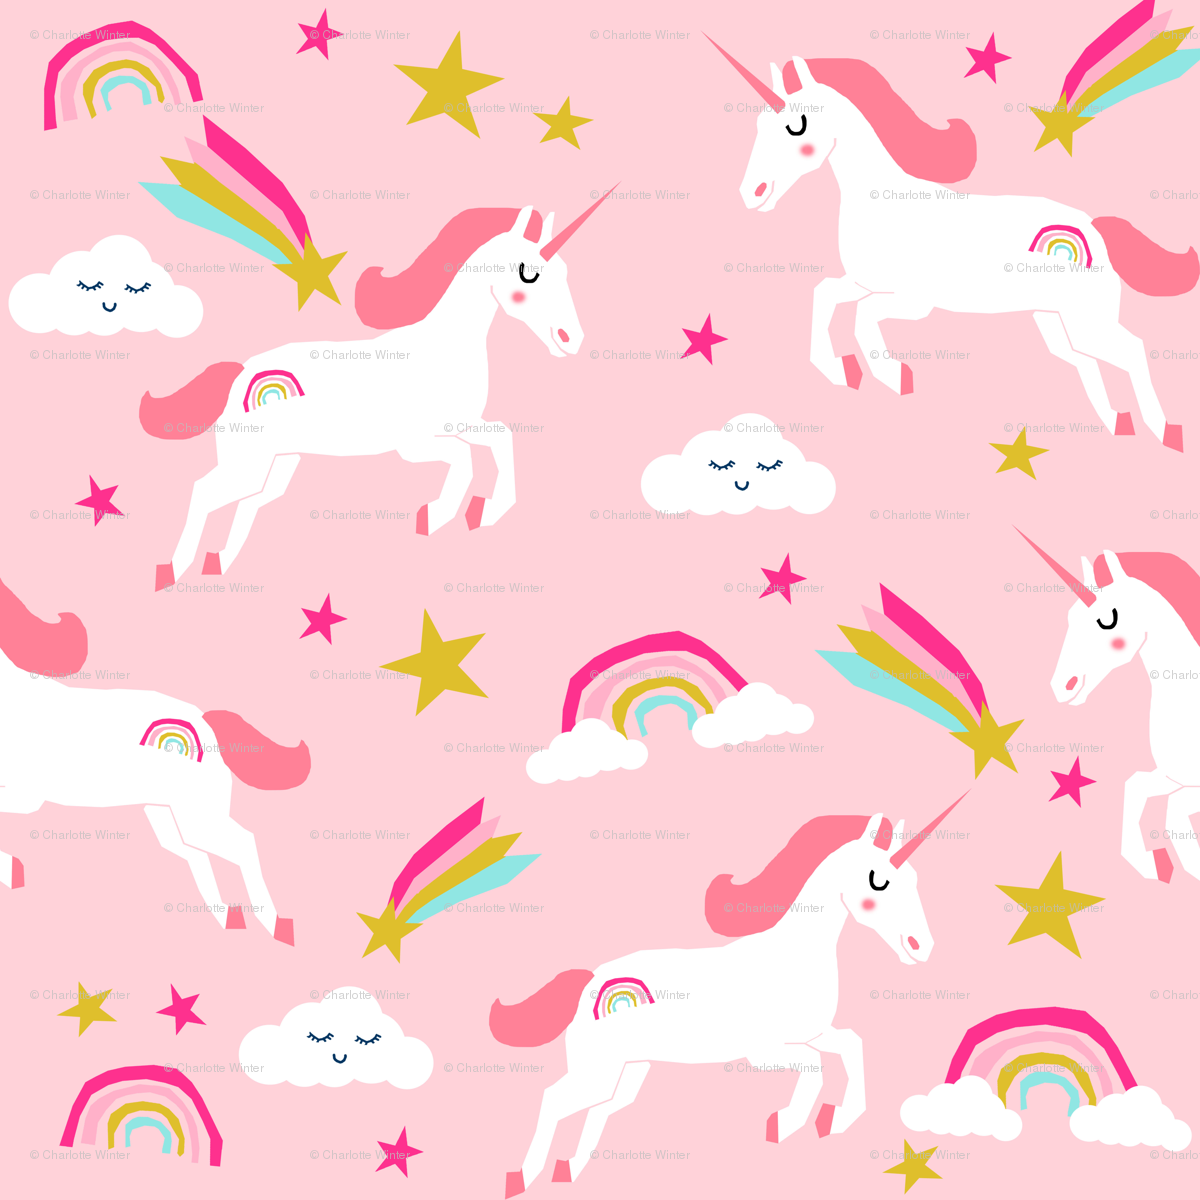 Unicorn Bright Colors Fabric Rainbow Clouds Stars Cute Girls Pink Wallpaper